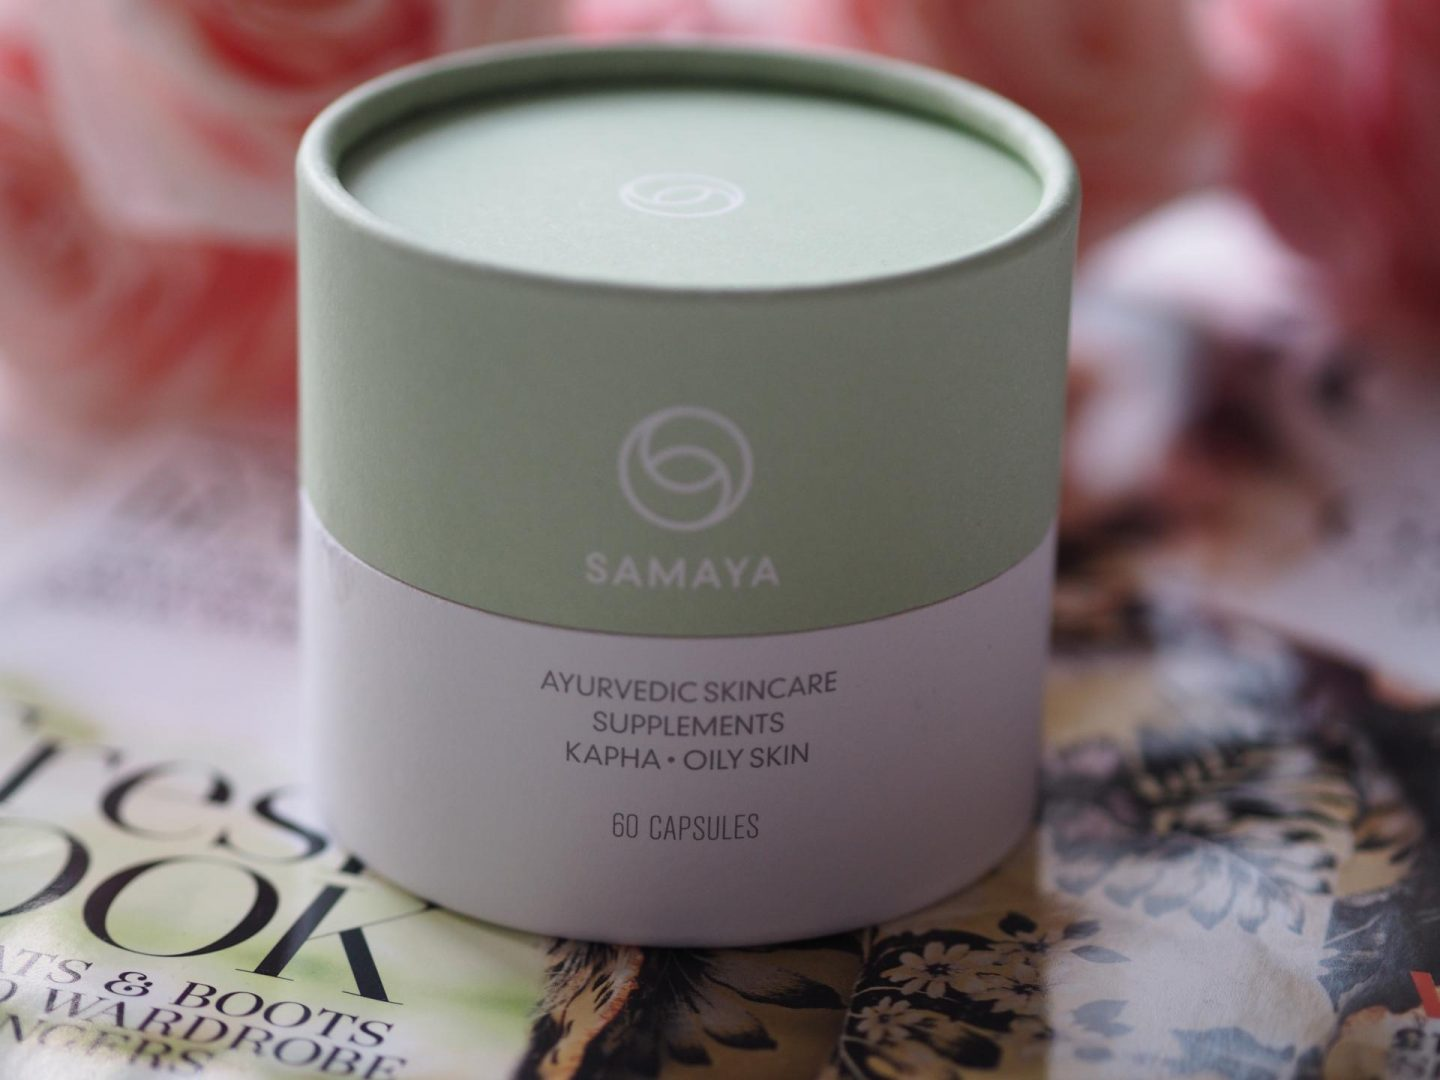 Samaya Ayurvedic Skincare Supplements for Kapha – Oily Skin